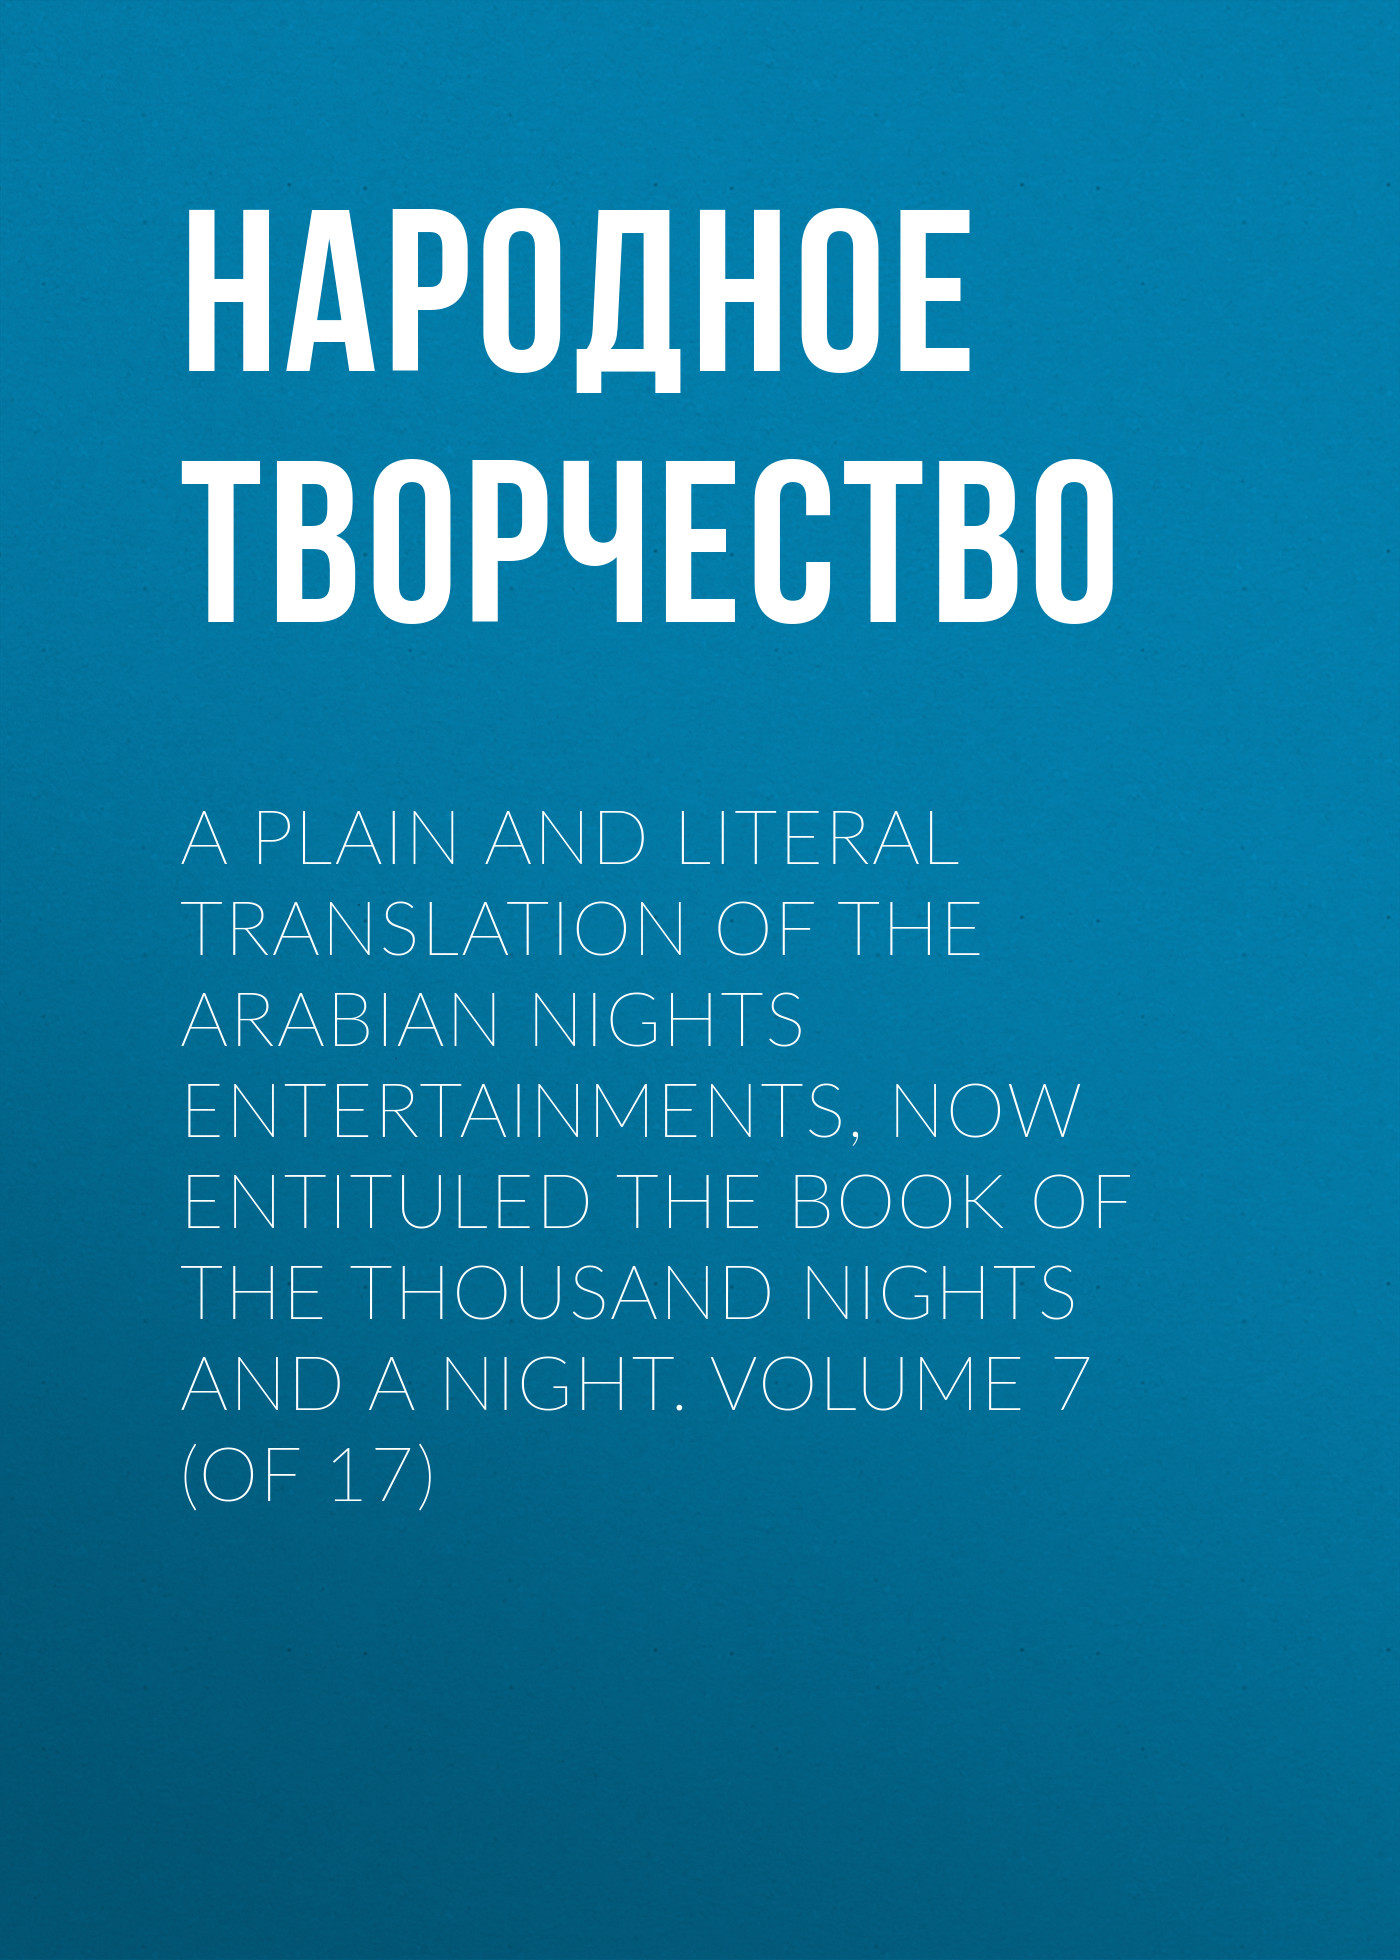 Народное творчество A plain and literal translation of the Arabian nights entertainments, now entituled The Book of the Thousand Nights and a Night. Volume 7 (of 17) народное творчество a plain and literal translation of the arabian nights entertainments now entituled the book of the thousand nights and a night volume 6 of 17